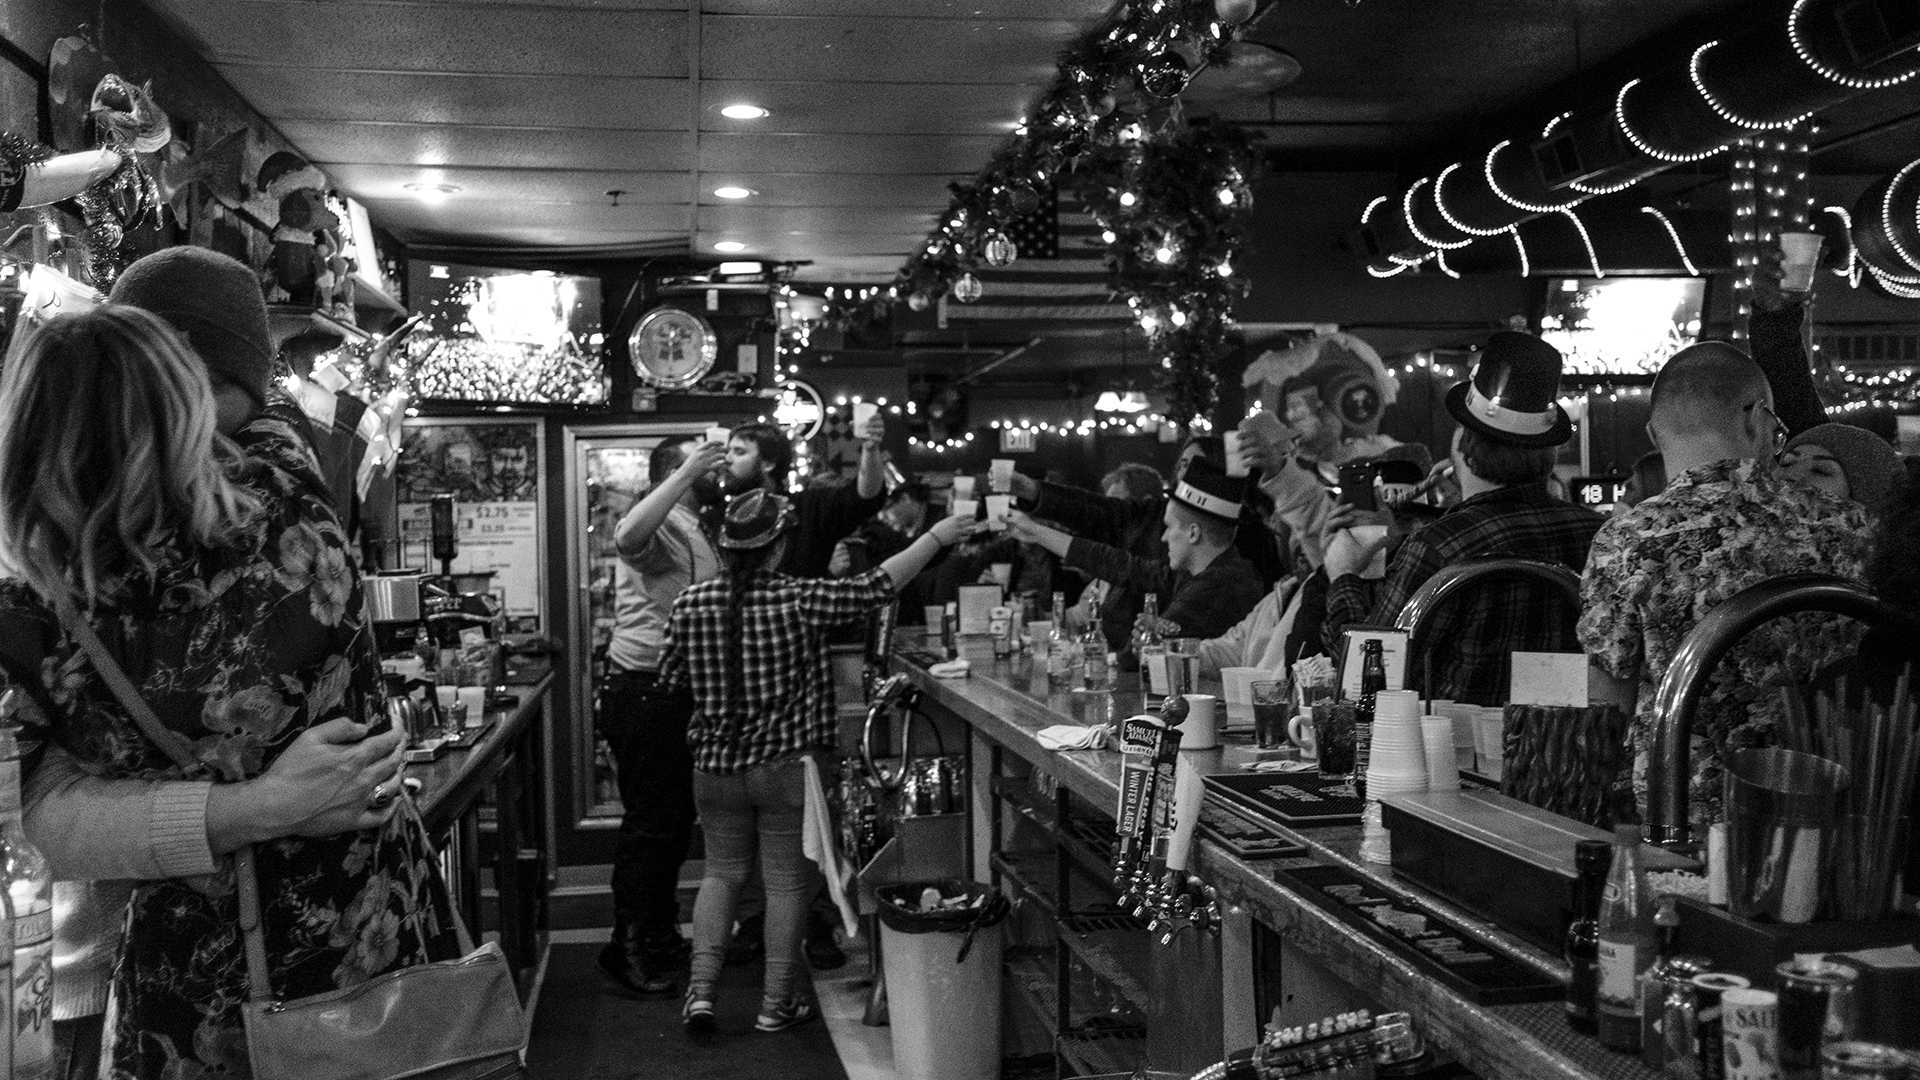 Today's feature photo -- Just after midnight on New Year's Day 2018 at the Deadwood Tavern in Iowa City. Bar patrons and employees partook in the traditional celebrations of a champagne toast and kissing a loved one. (Nick Rohlman/The Daily Iowan)